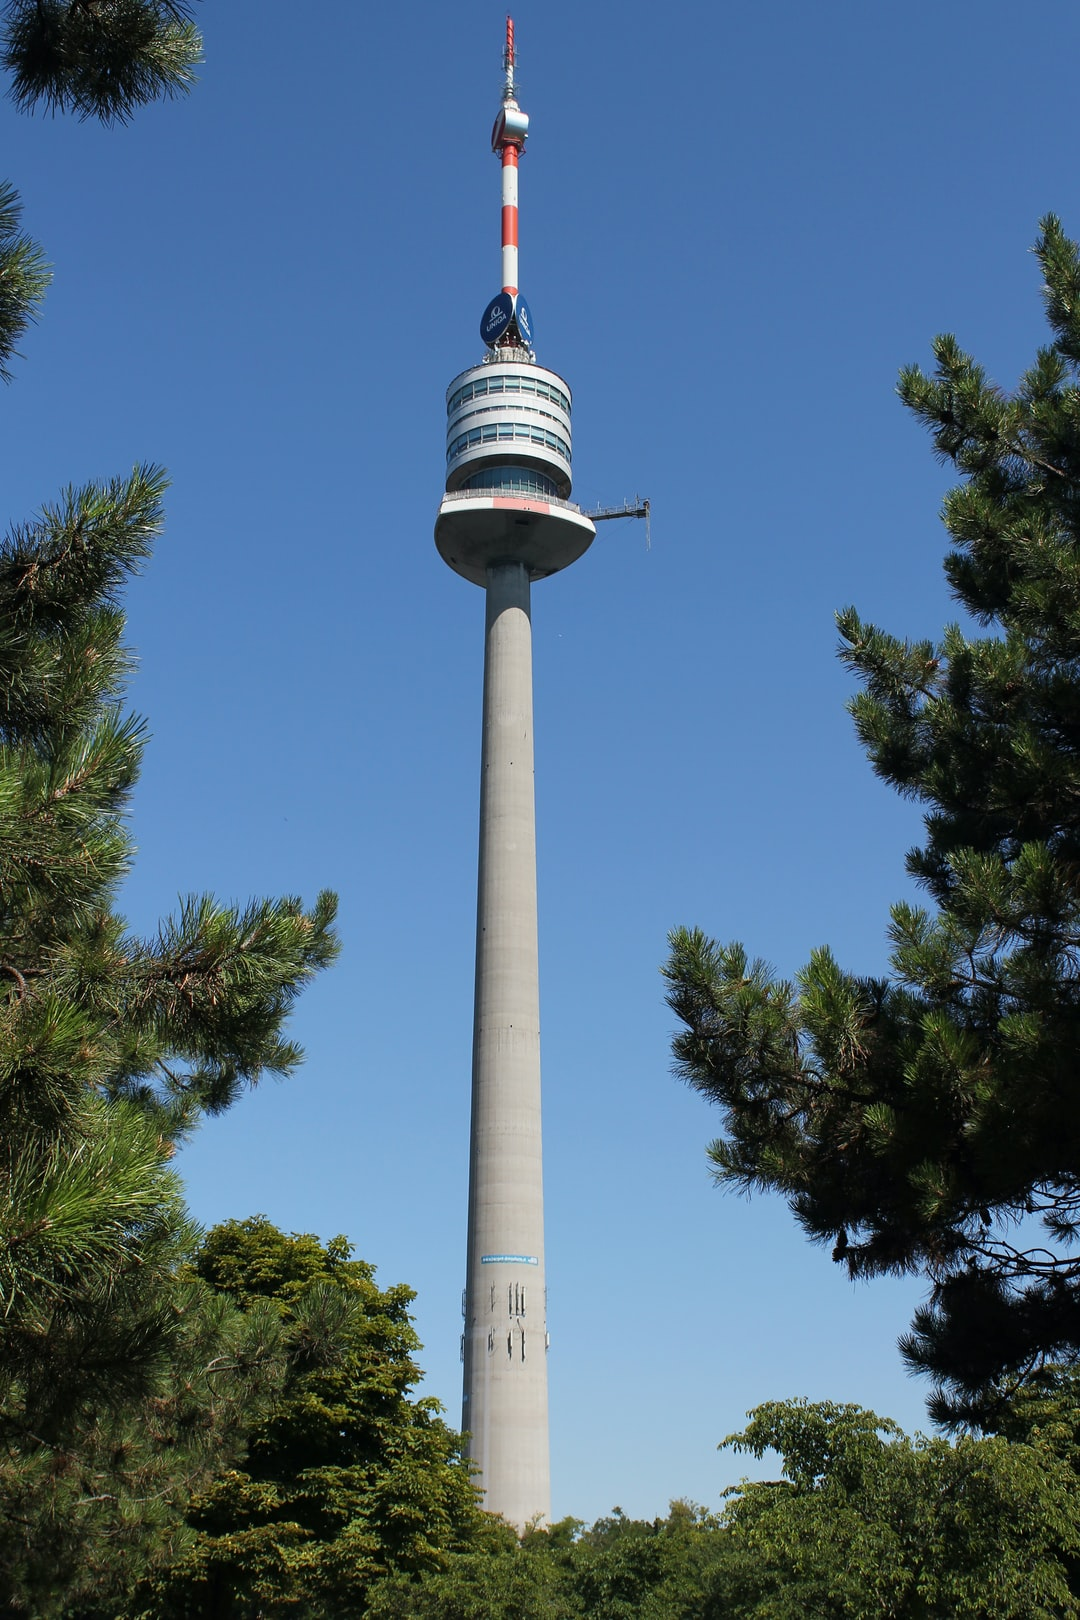 Vienna Donau Tower